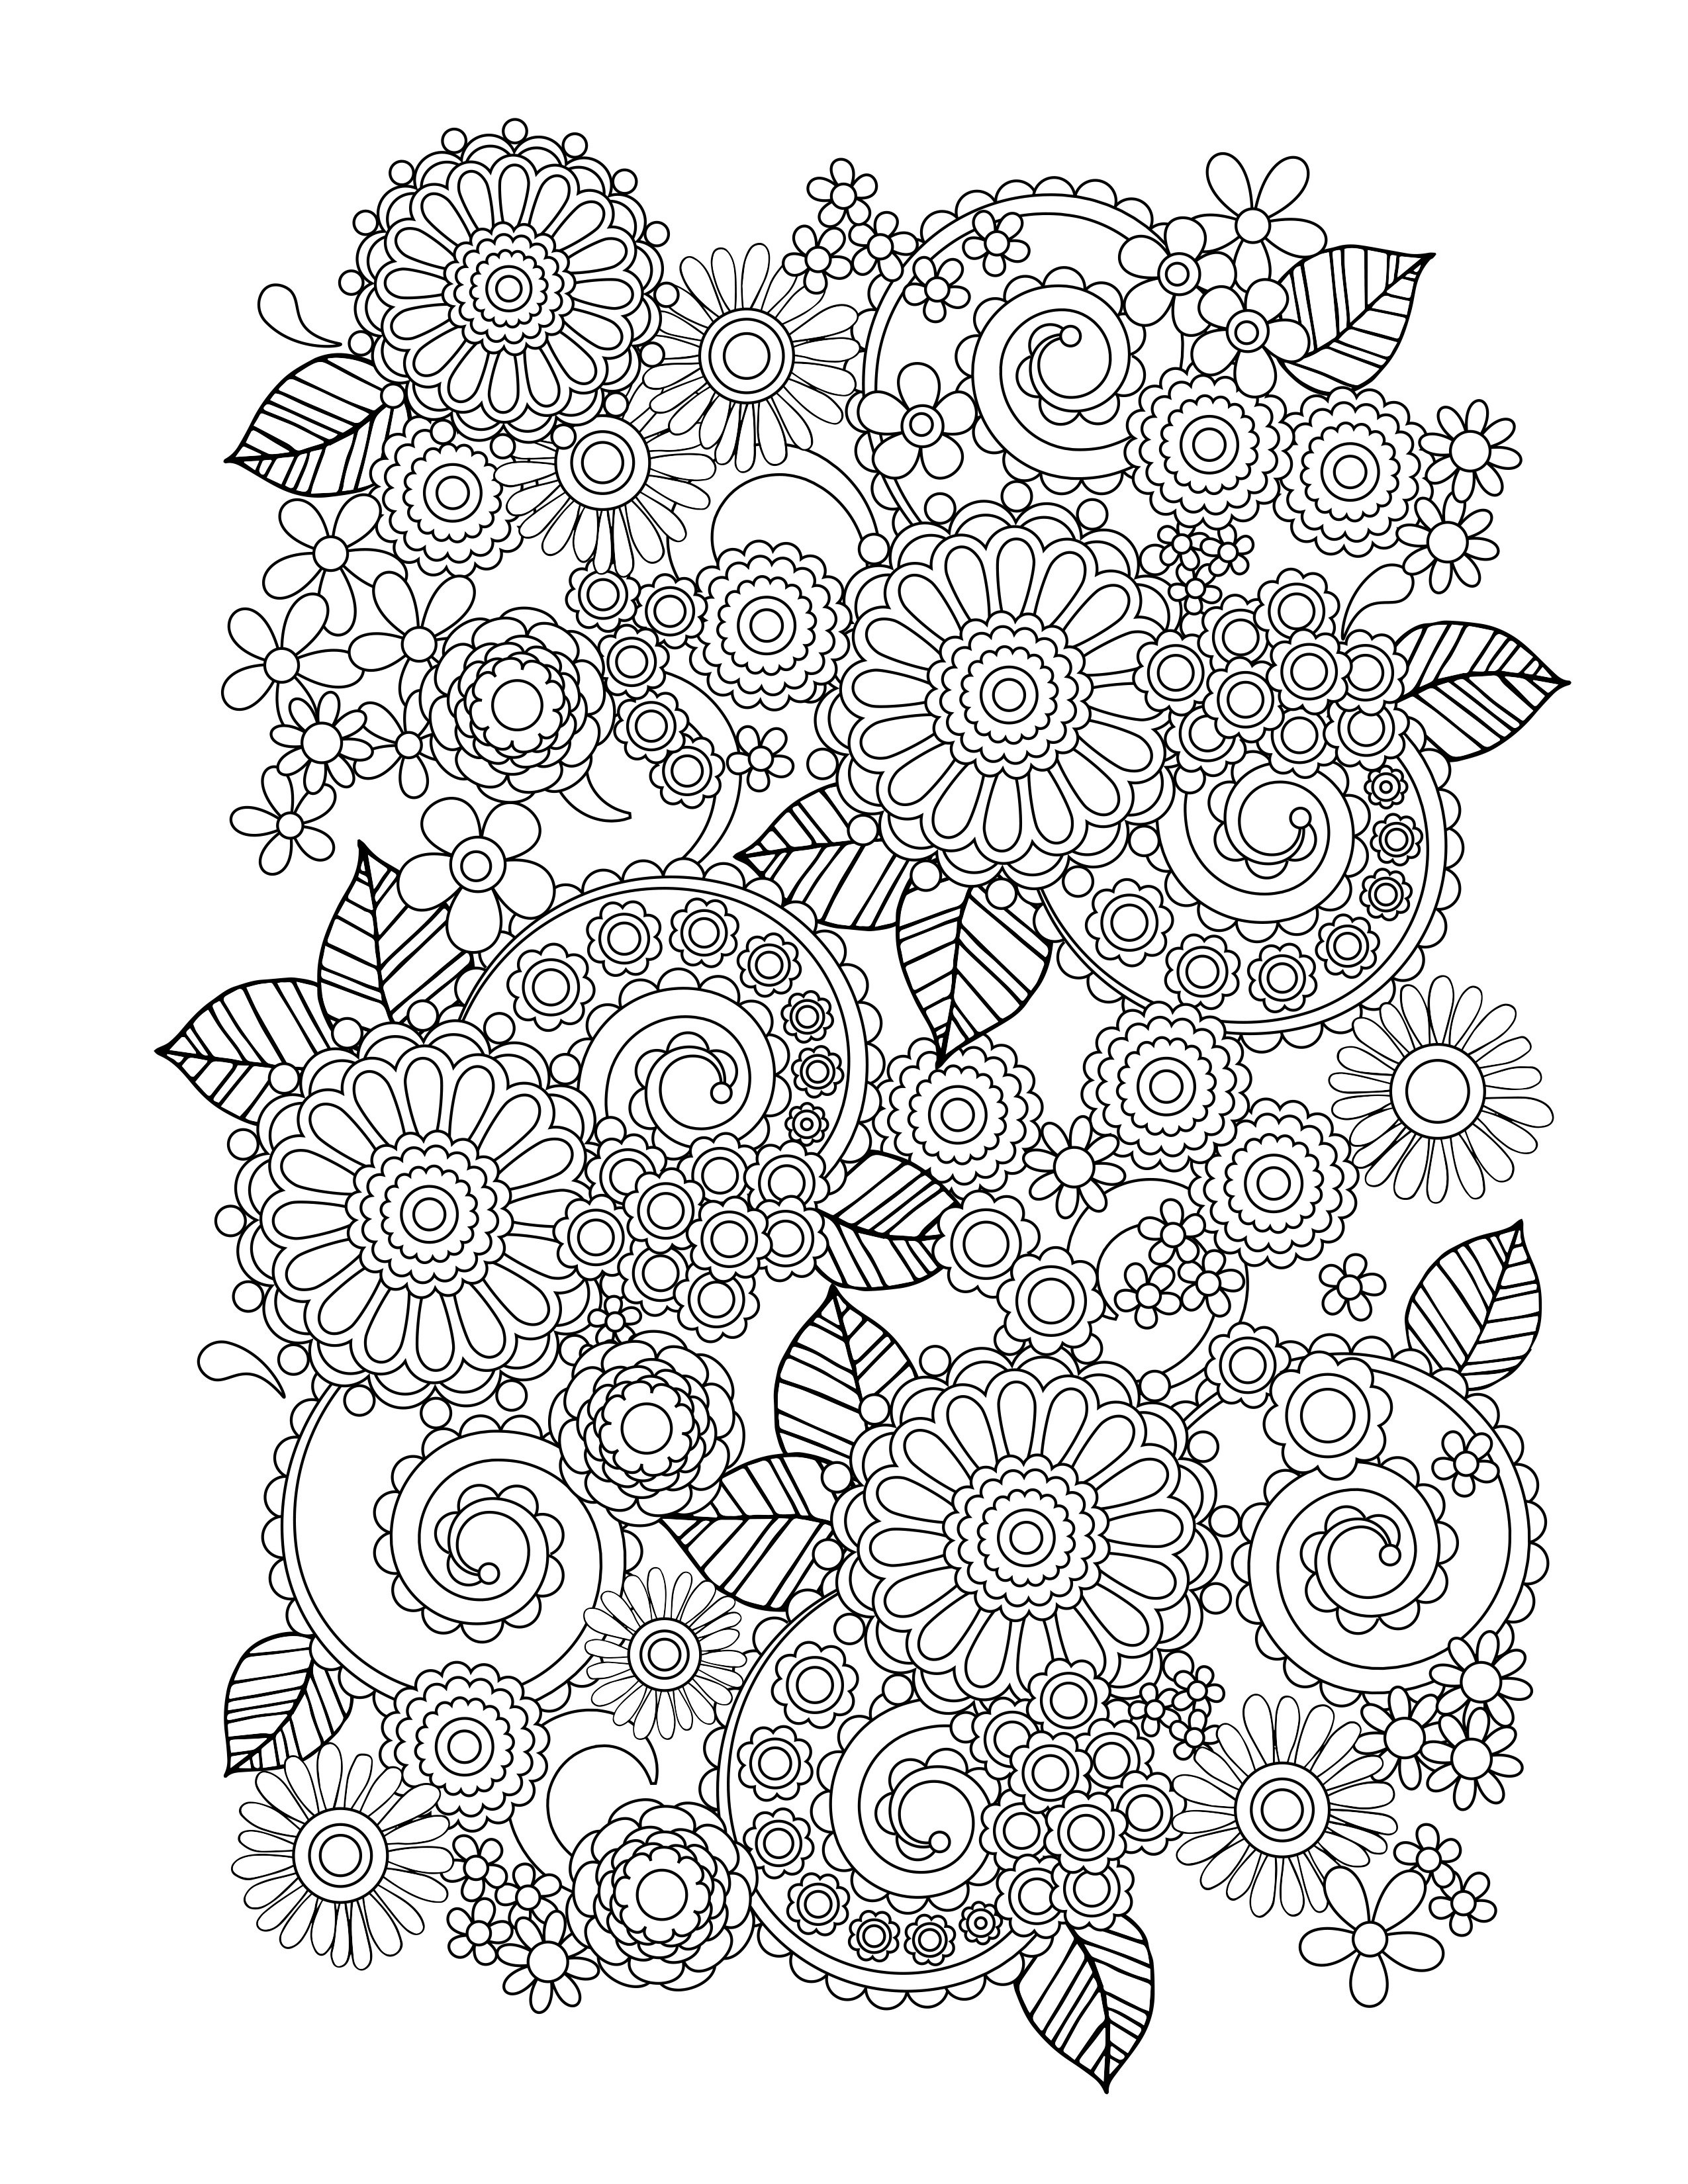 flower coloring book pages flower coloring pages for adults best coloring pages for book flower coloring pages